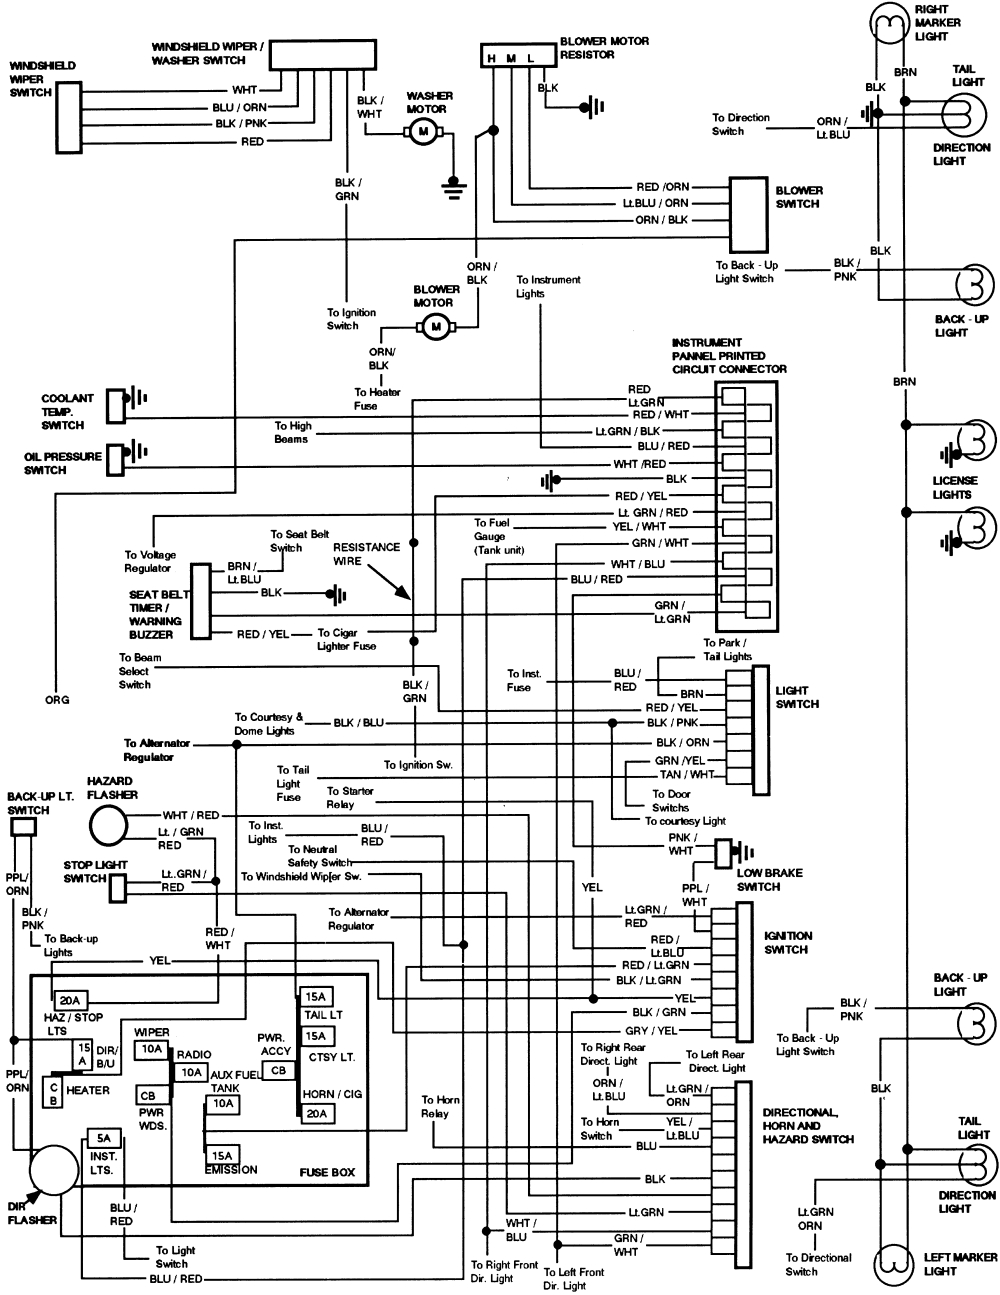 2006 Ford Ranger Fuel Pump Wiring Diagram. Ford. Wiring